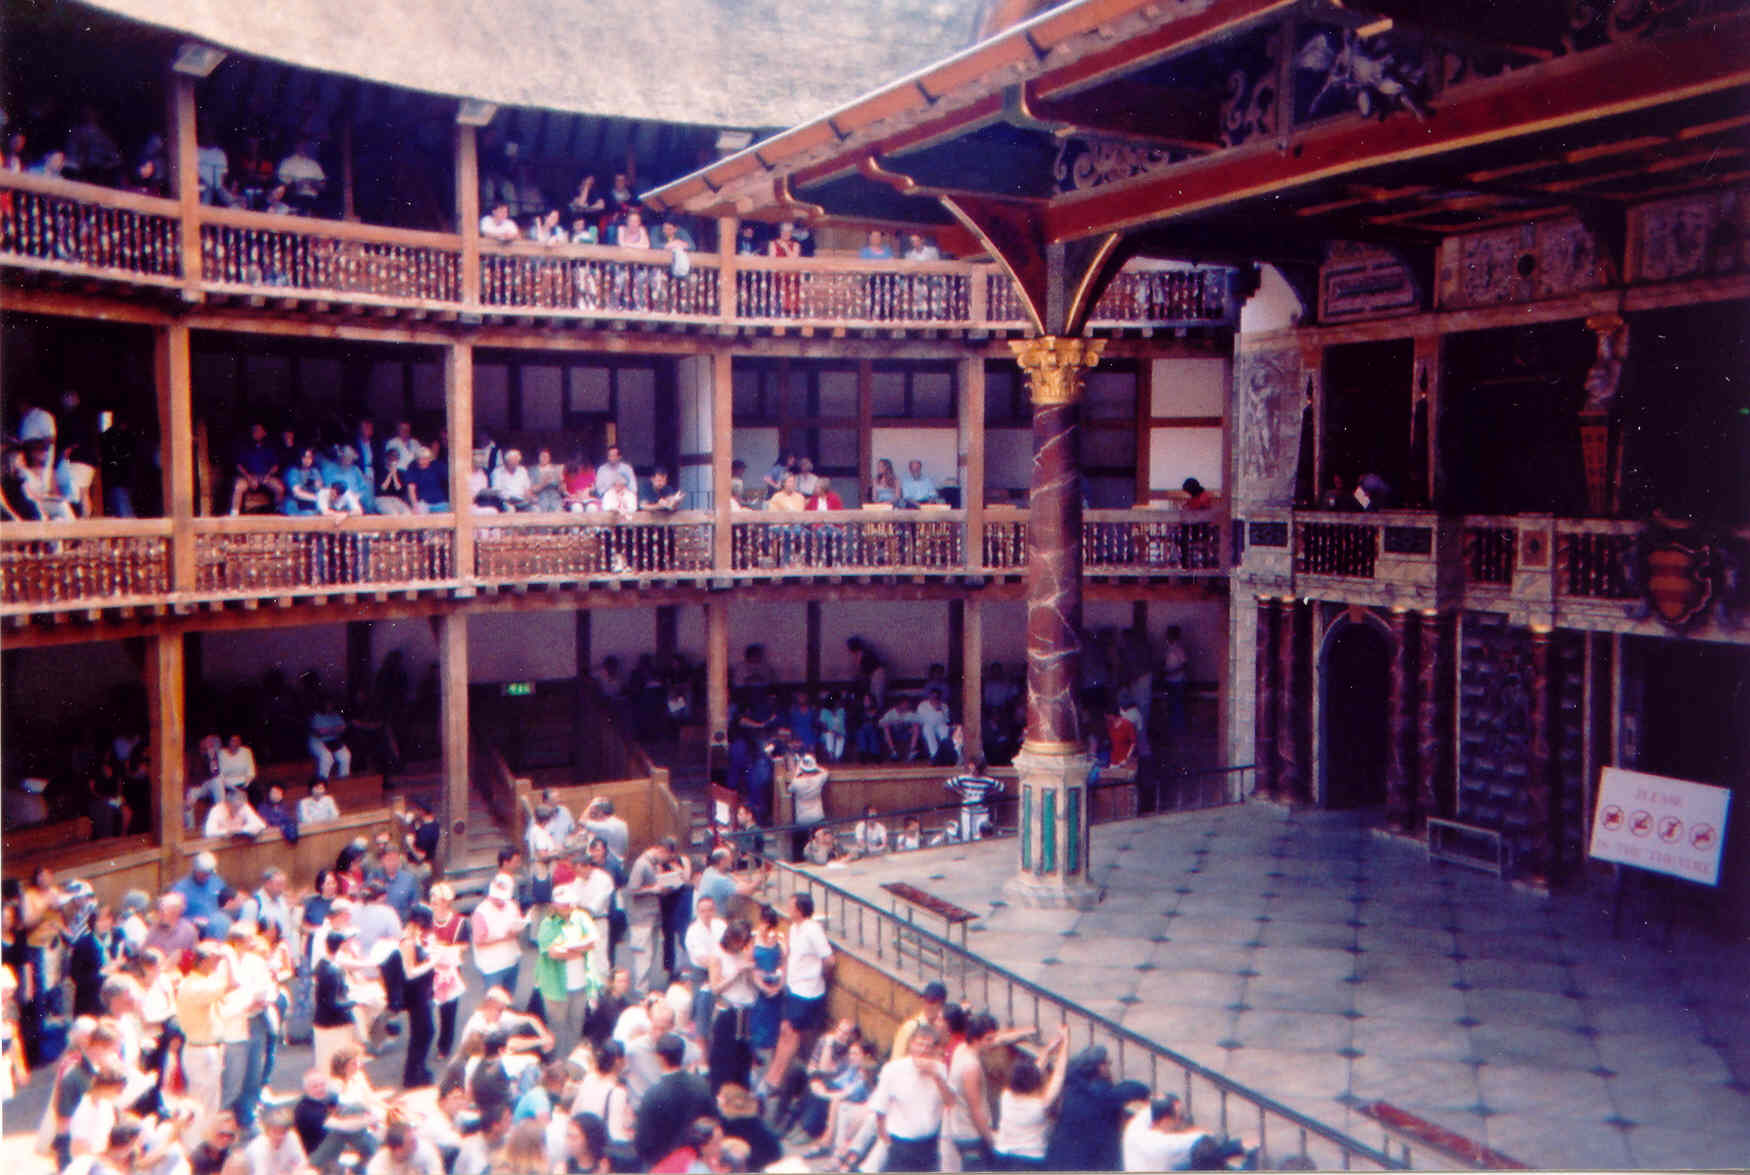 elizabethan theatre audience - photo #22